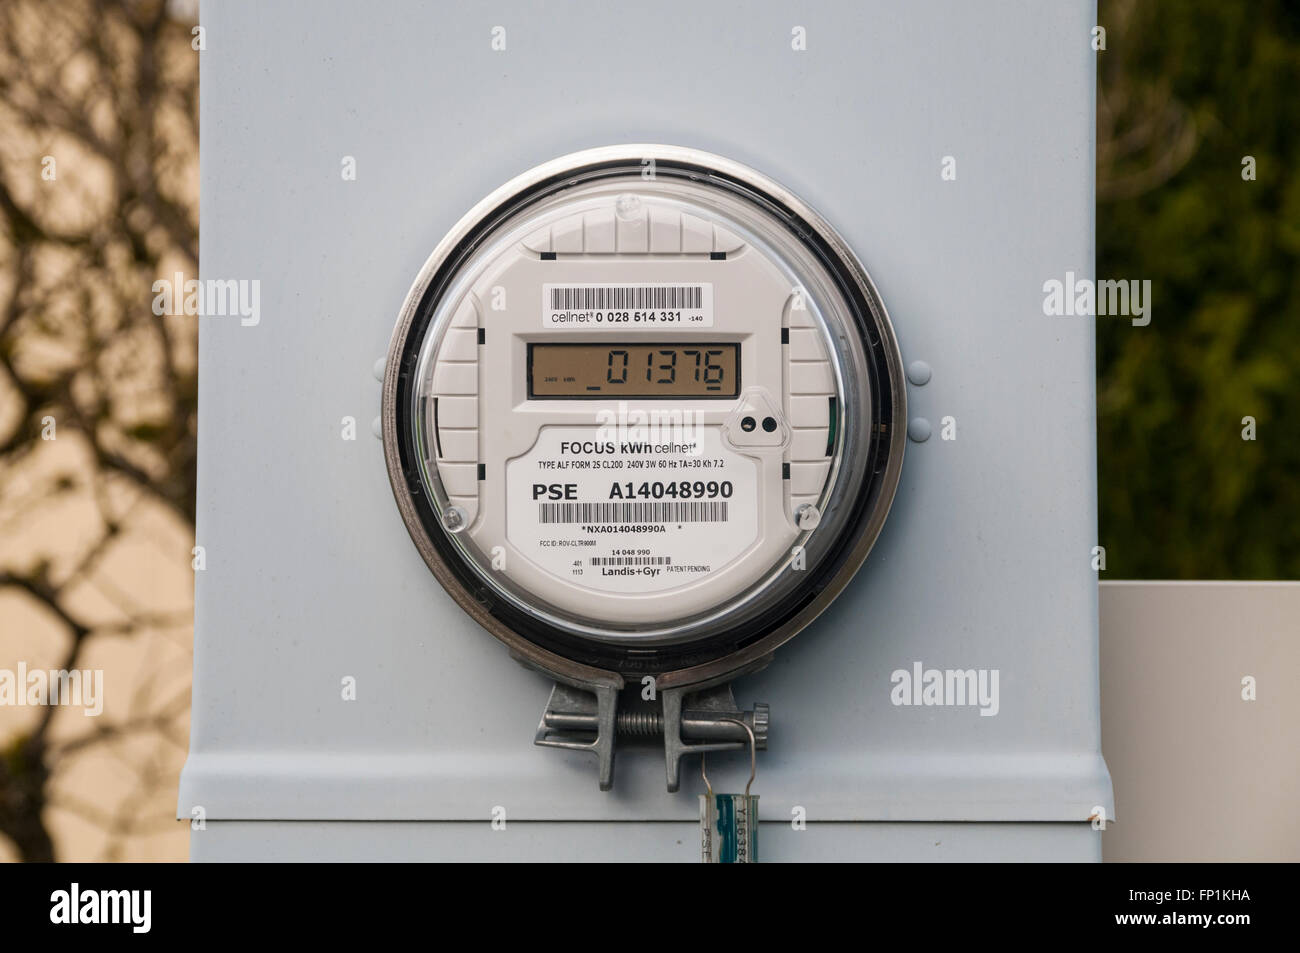 Digital electric meter for a mobile home park. Stock Photo